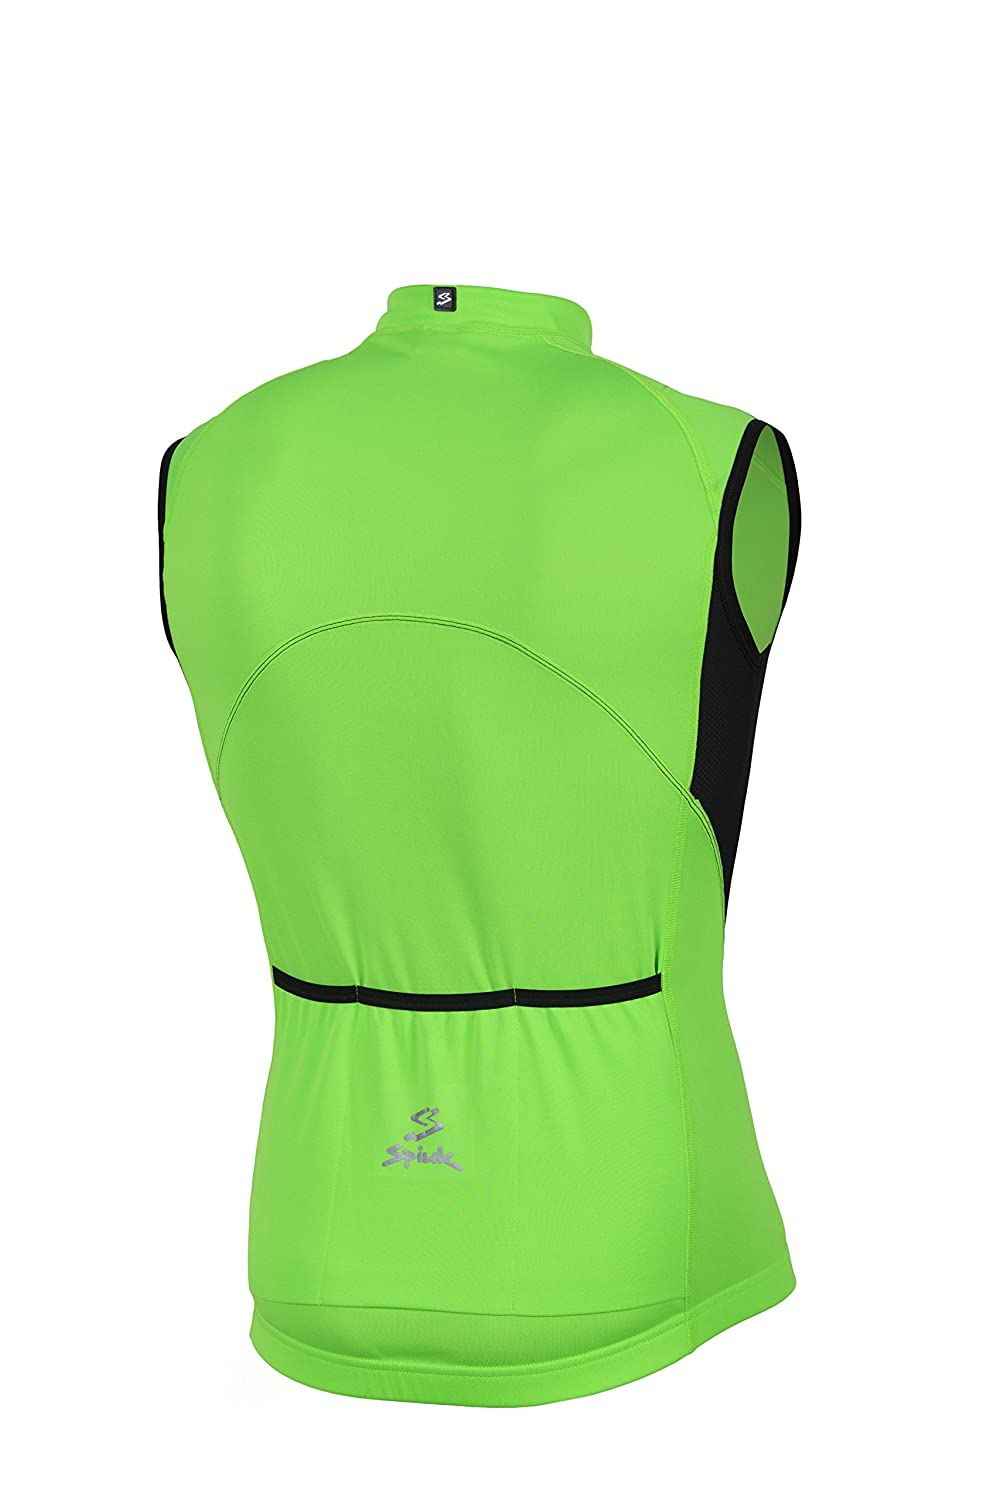 Hombre Spiuk Anatomic S//M Maillot